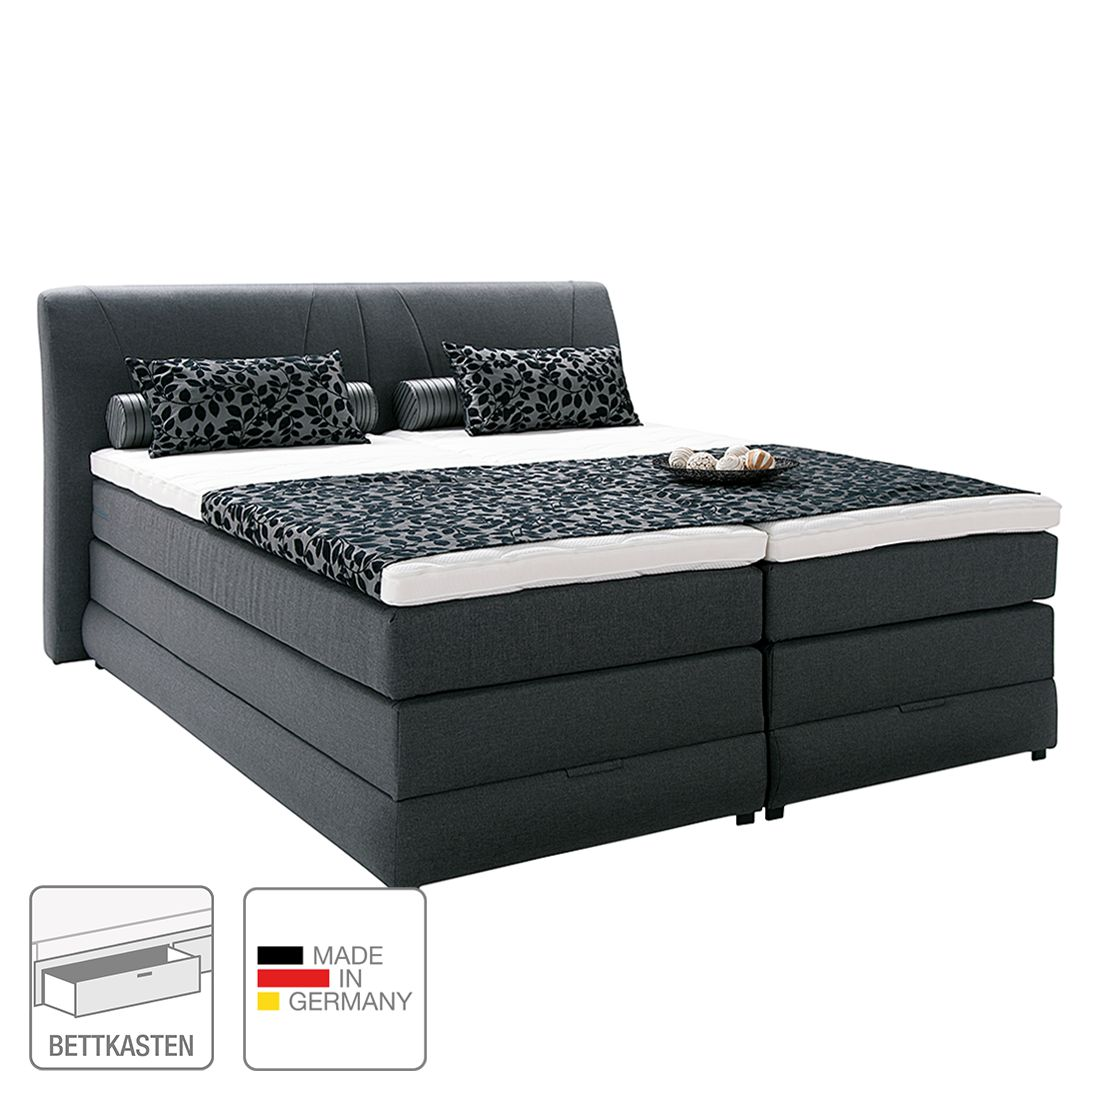 Boxspringbett Savoy – inklusive Topper – Webstoff – 160 x 200cm – H2 bis 80 kg – Anthrazit, Art of Sleep online kaufen